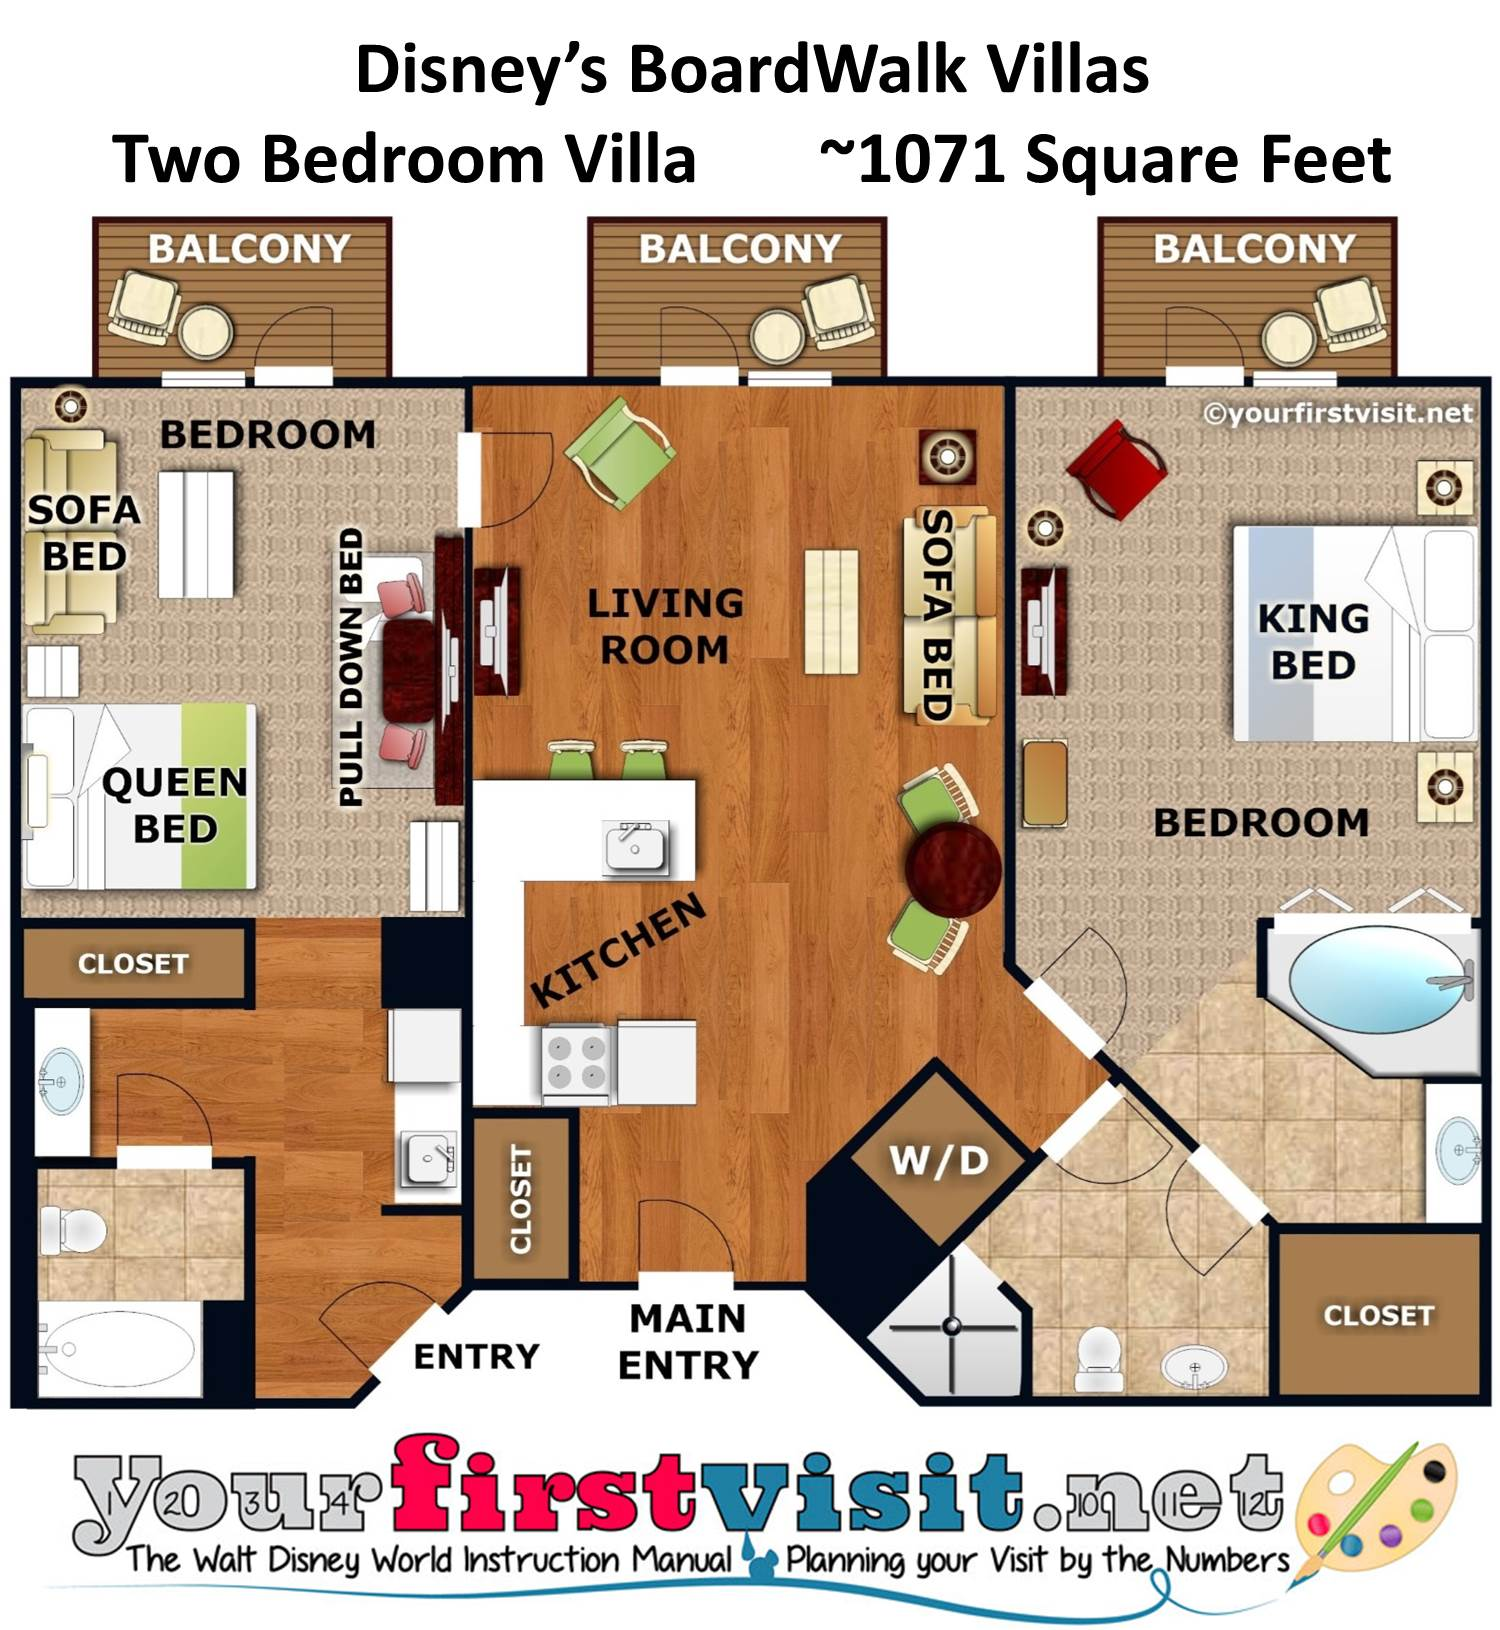 Floor Plan Two Bedroom Villa Disney's BoardWalk Villas from yourfirstvisit.net